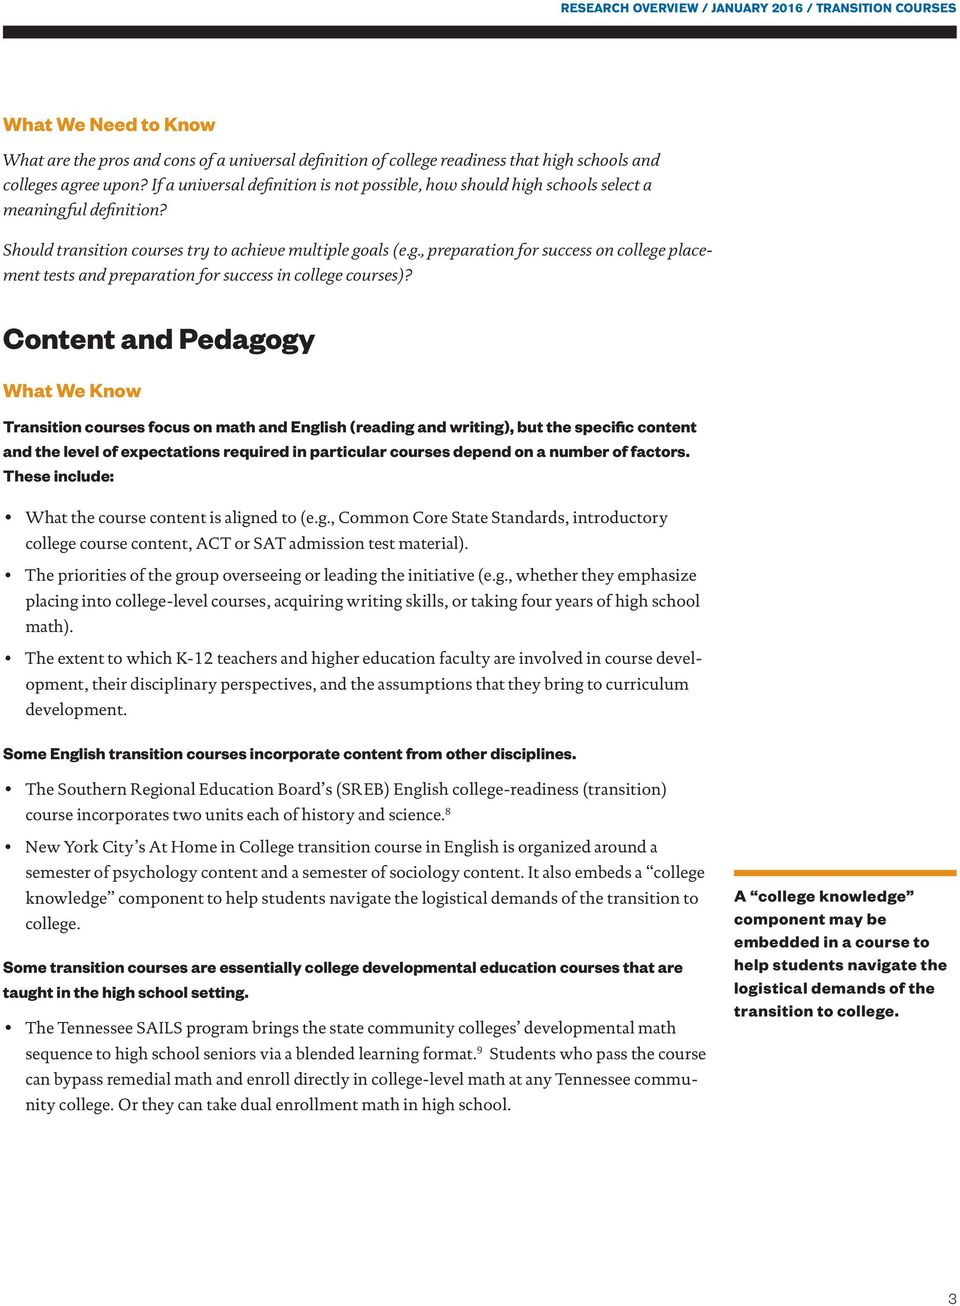 Content and Pedagogy Transition courses focus on math and English (reading and writing), but the specific content and the level of expectations required in particular courses depend on a number of